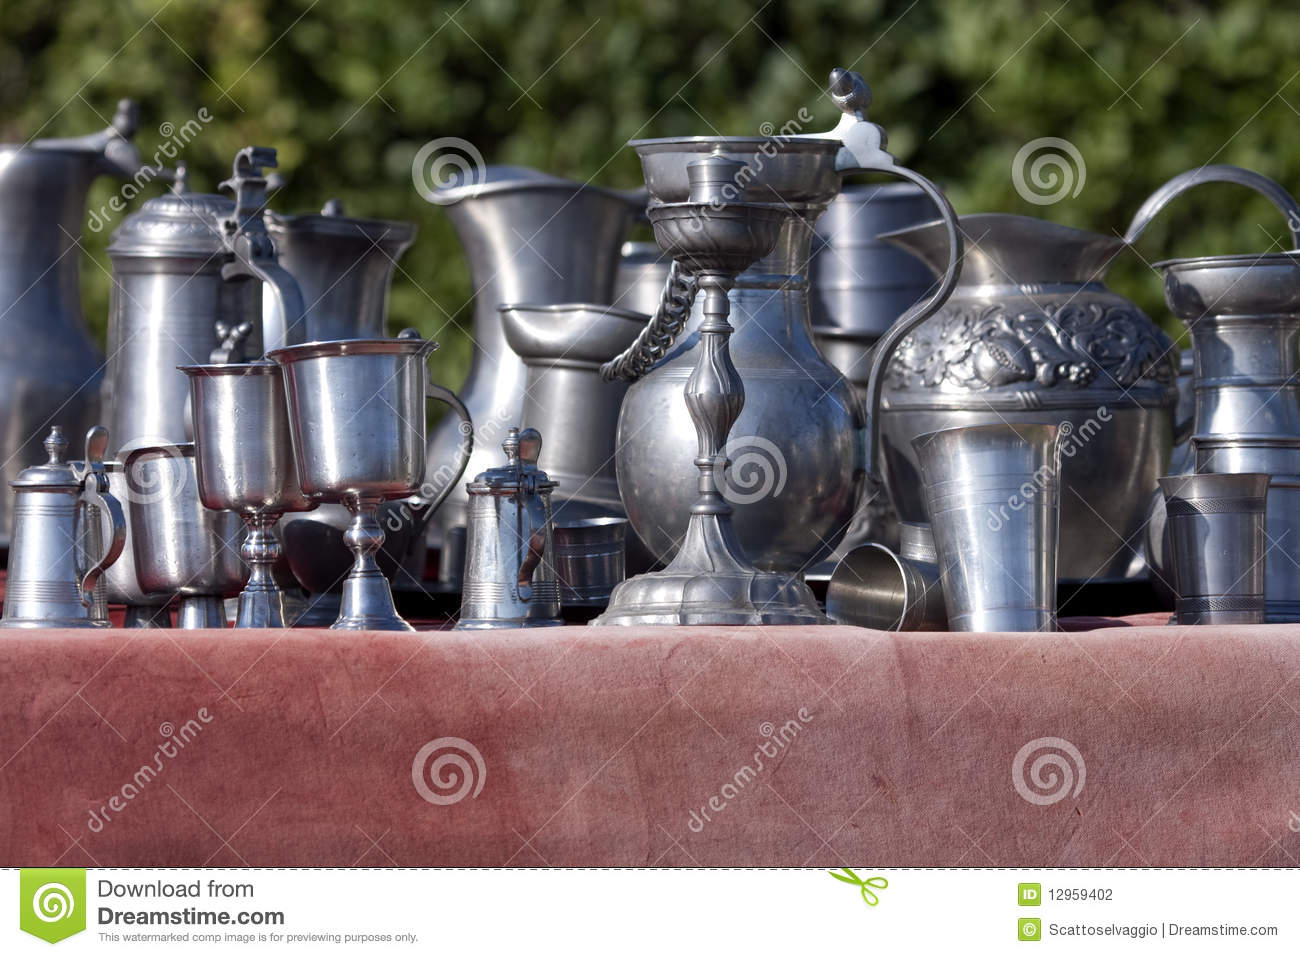 Italy: Renaissance silverware: Flasks, cups, pots, ampoules made of metal, silver or pewter. Were also war spoils.